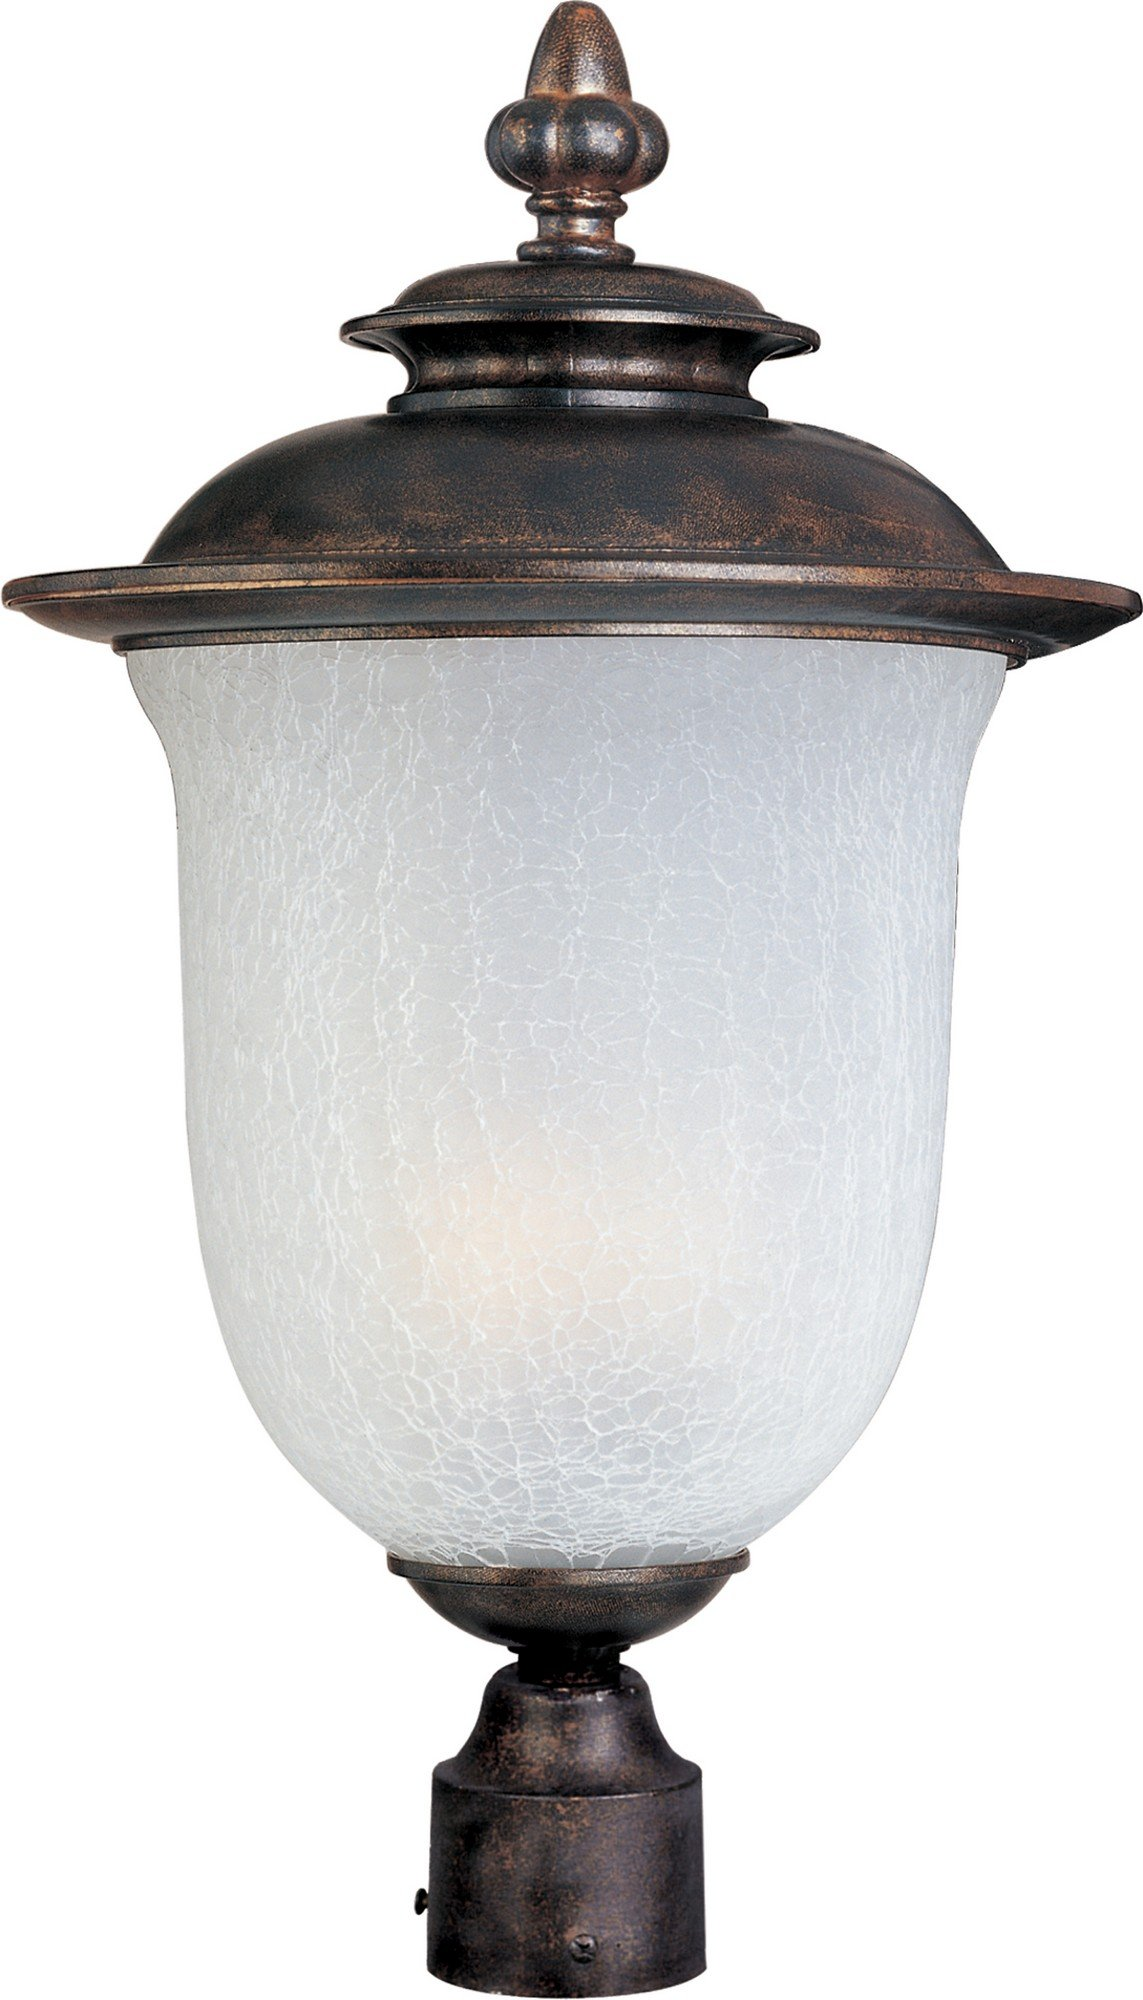 Maxim 3091FCCH Cambria Cast 3-Light Outdoor Pole/Post Lantern, Chocolate Finish, Frost Crackle Glass, CA Incandescent Incandescent Bulb , 40W Max., Dry Safety Rating, Standard Dimmable, Fabric Shade Material, Rated Lumens